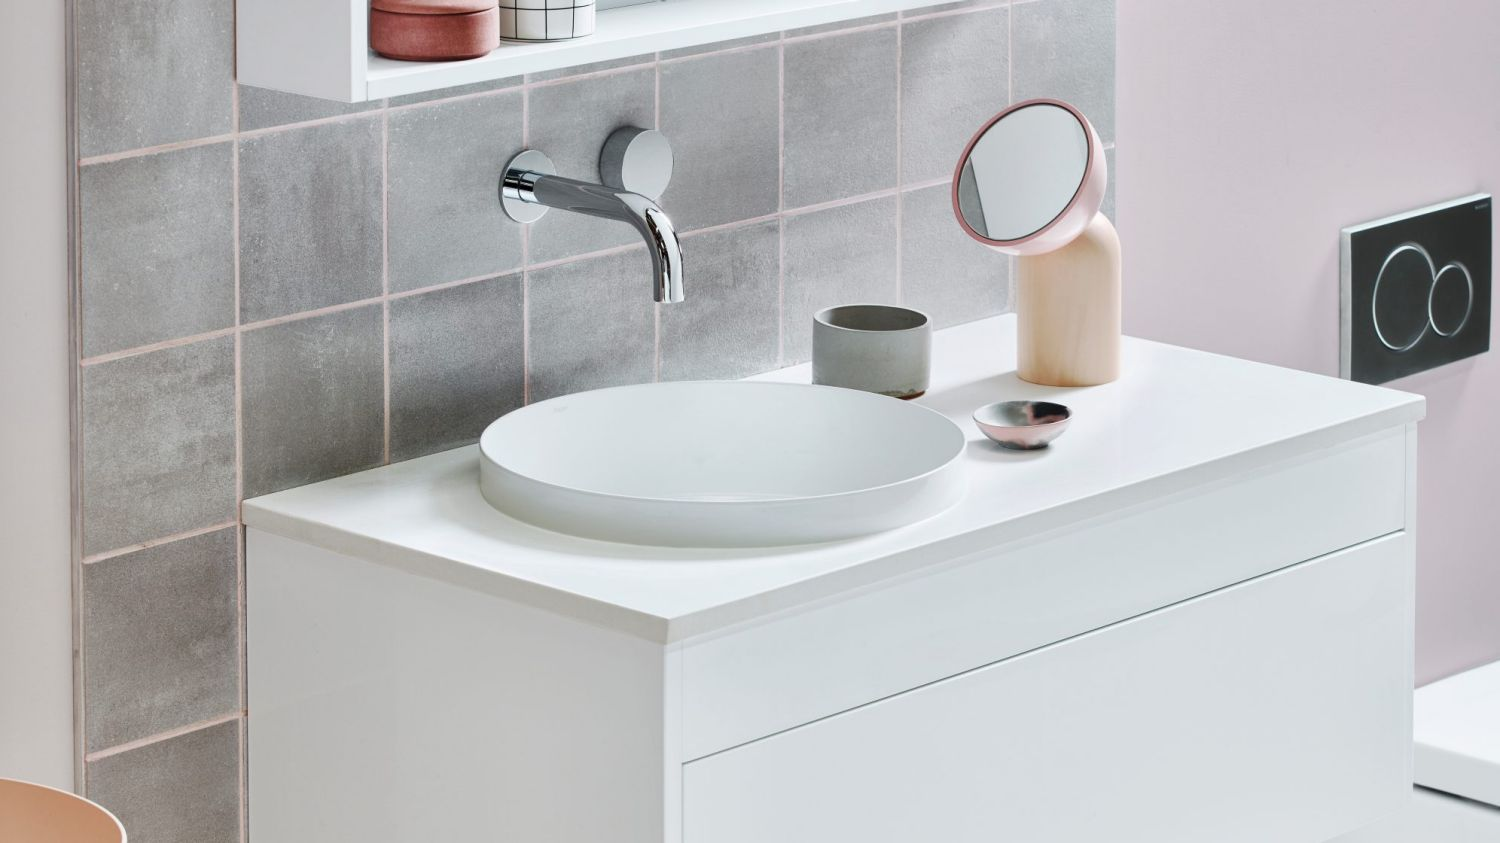 Simple white bathroom vanity in combination with grey tiles creates calm and modern athmosphere // reece.com.au